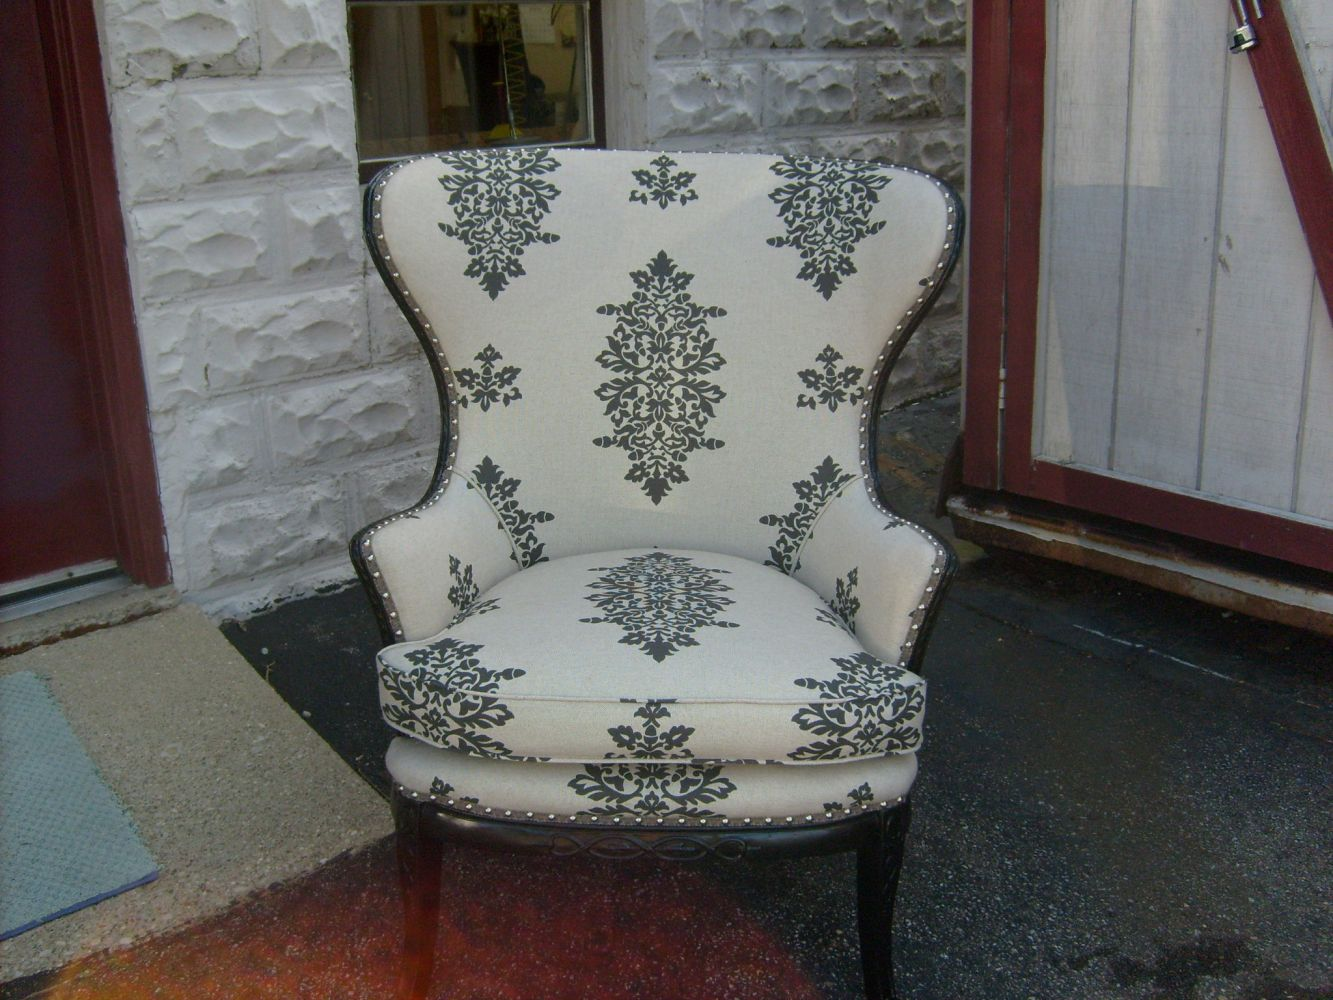 Expect only quality workmanship from our upholsterers in Cincinnati, OH